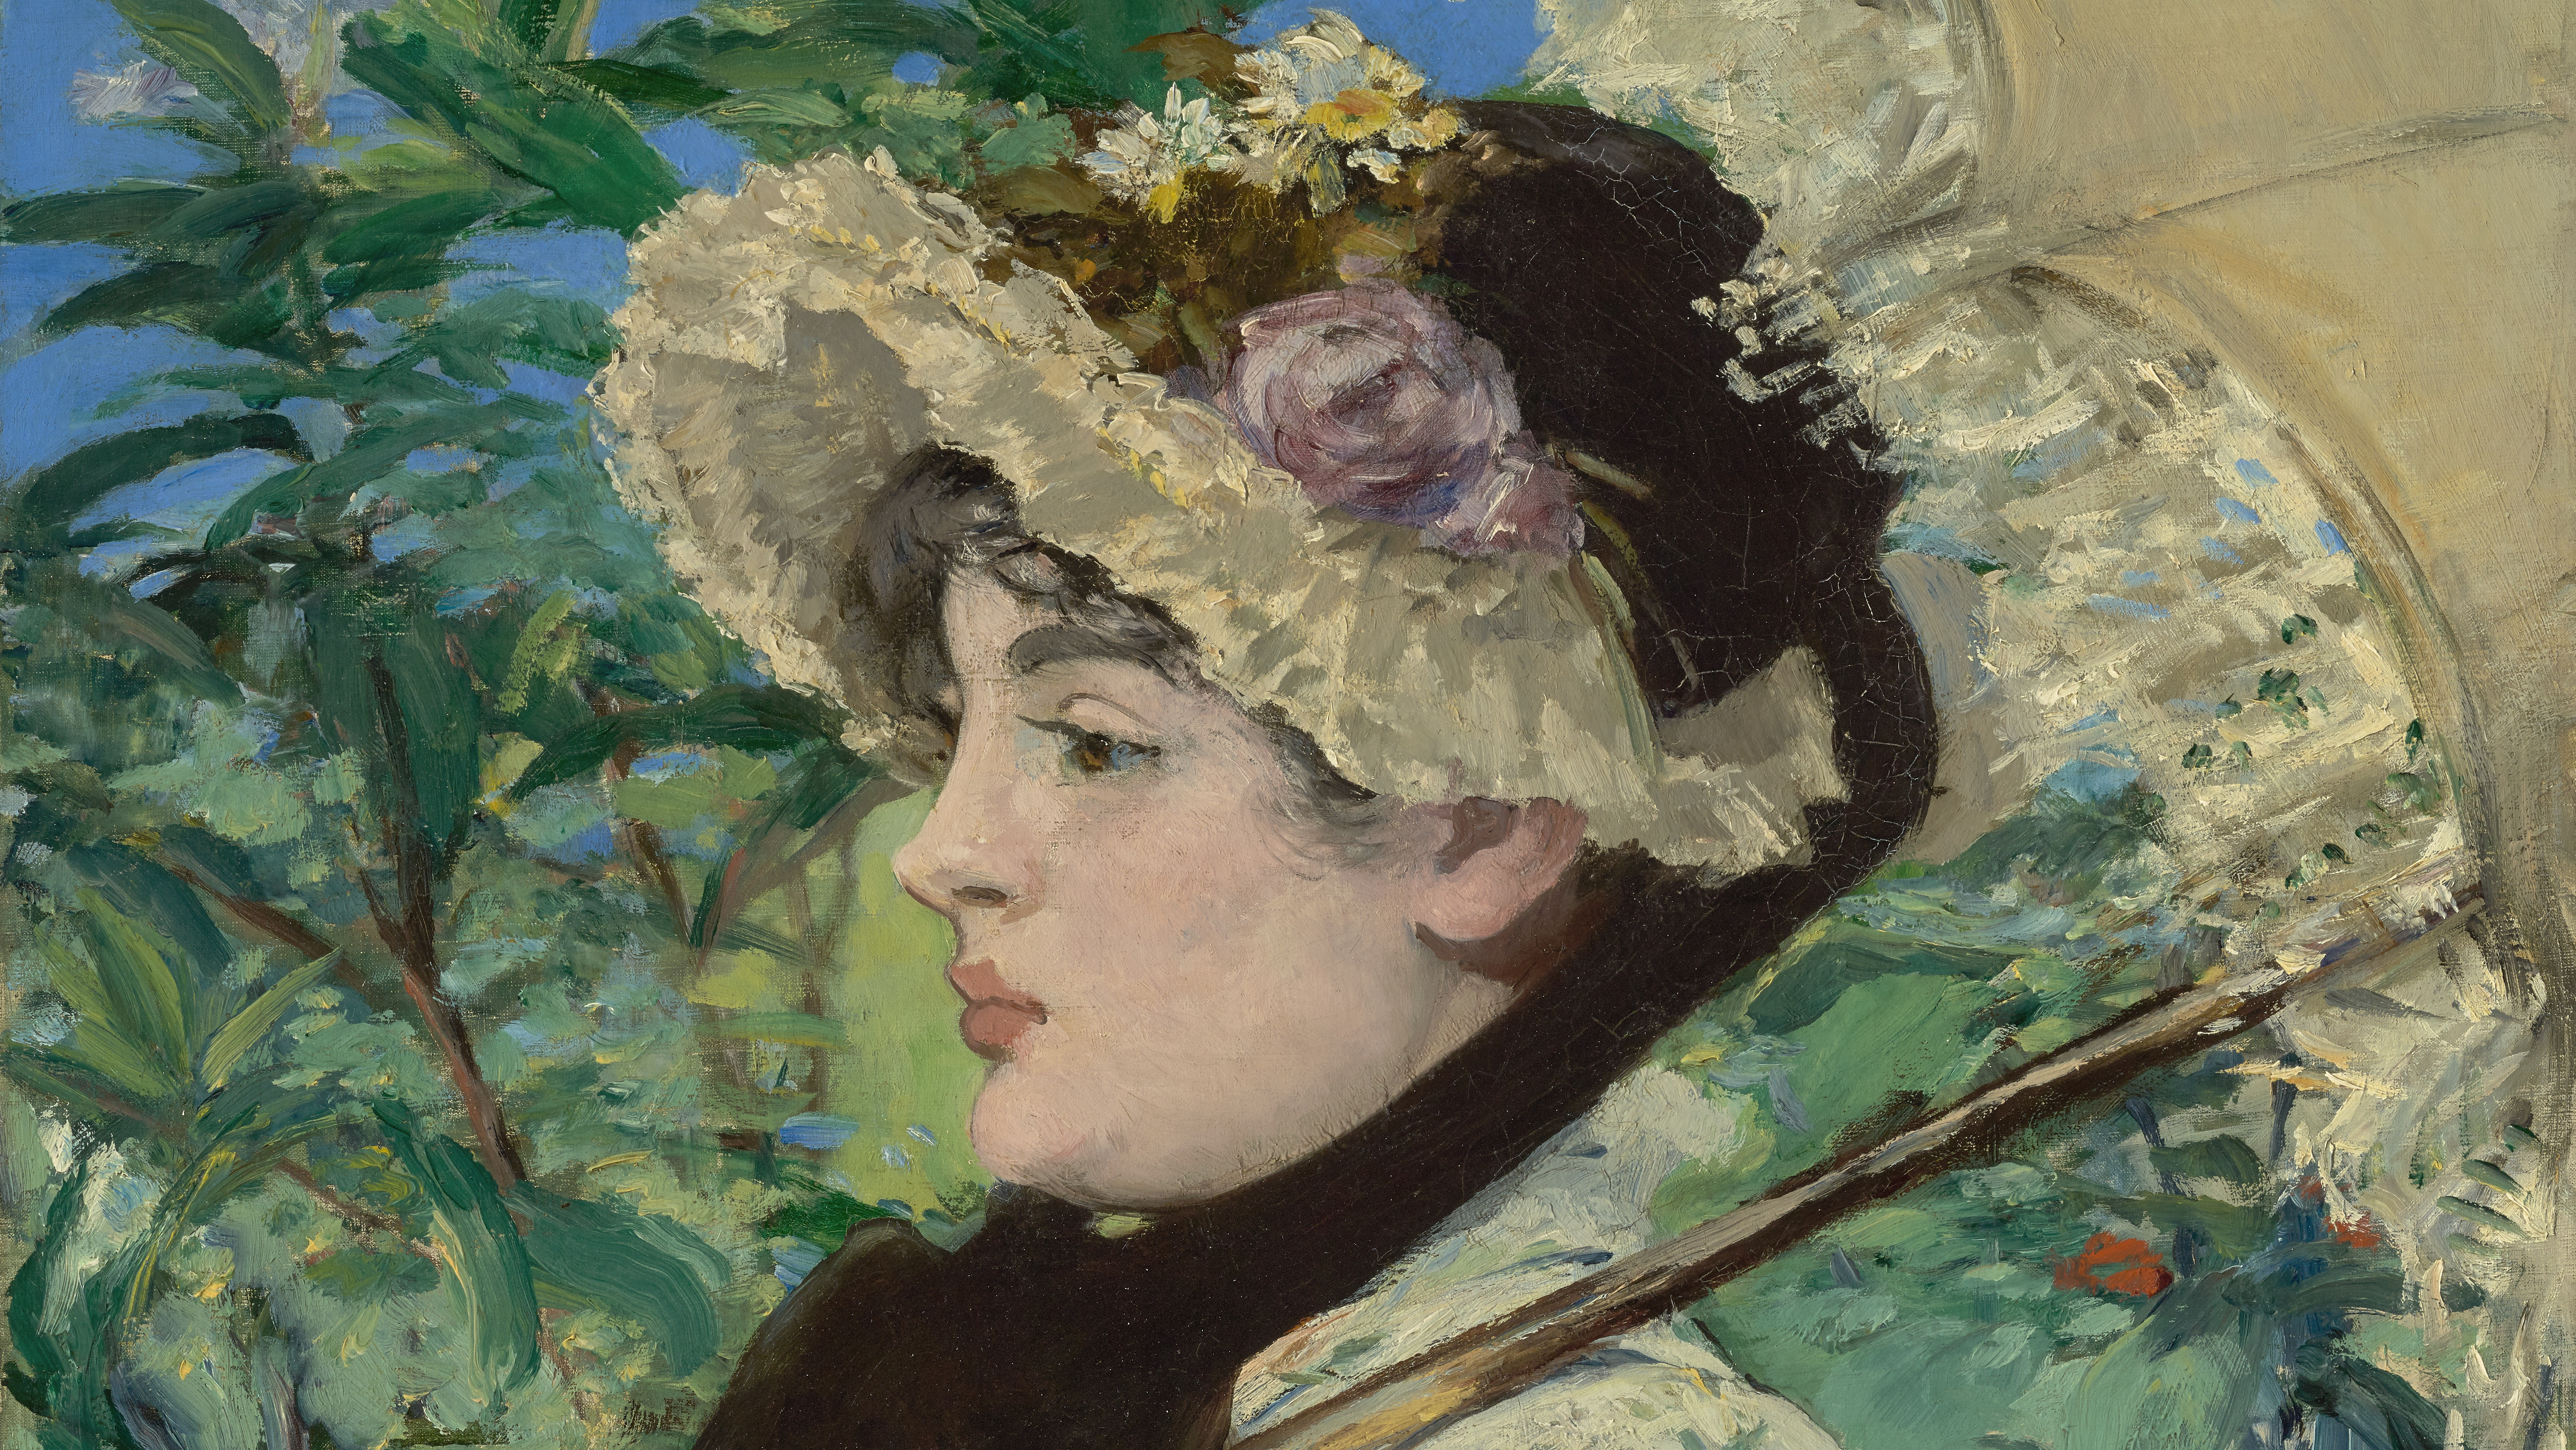 A stylish young woman with a bonnet, parasol, and flowered dress sits amid greenery.